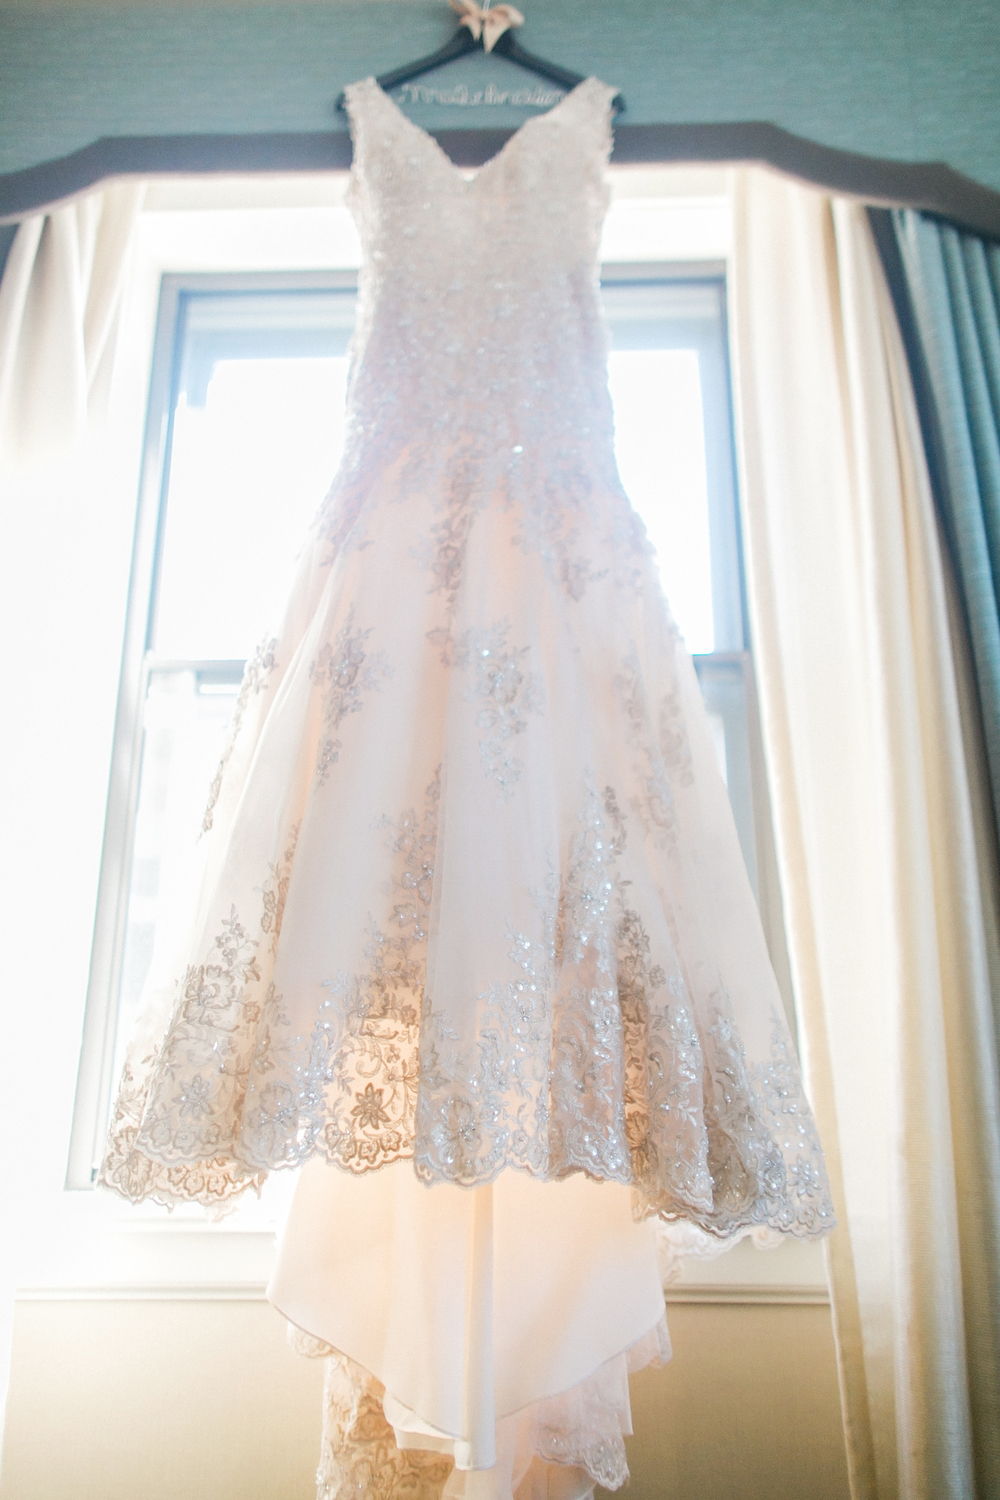 Allure Bridal Gold Lace Wedding Dress || Caitlin Elizabeth Bridal and Alterations